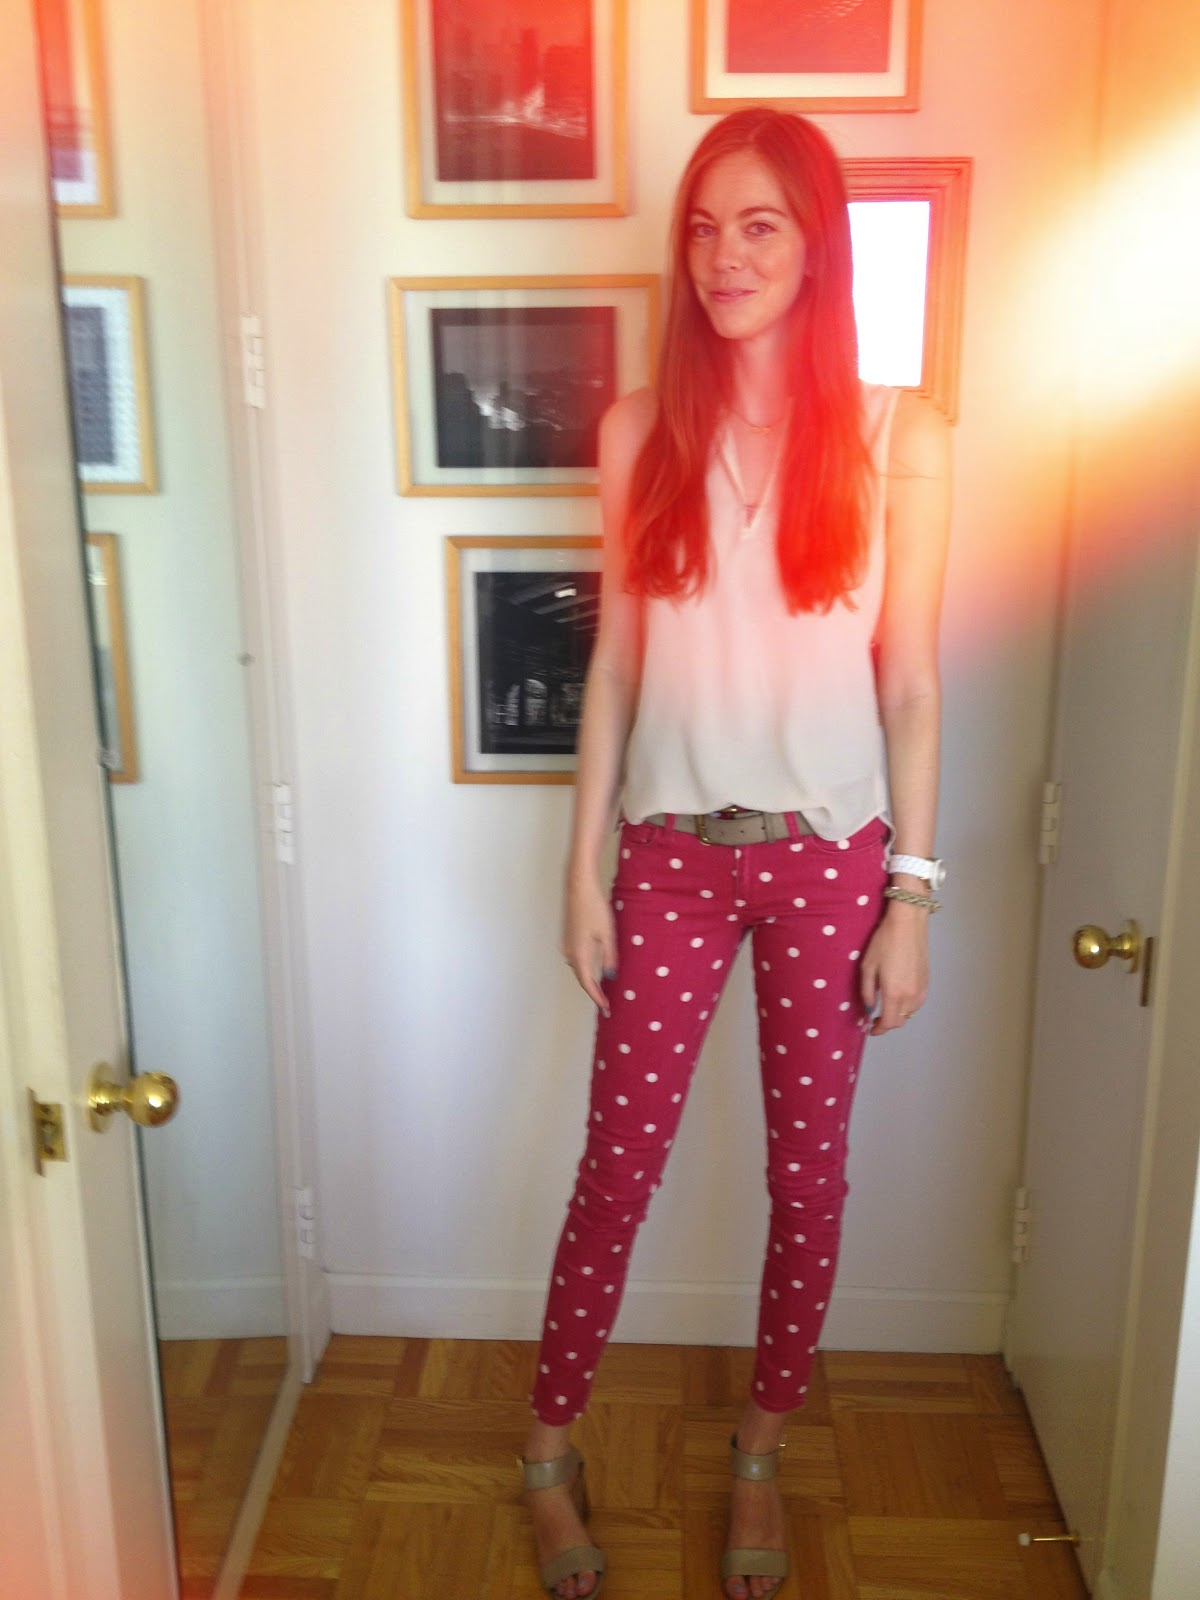 To fall into love those red polka dot pants those red polka dot pants i bought these pants within 0005 seconds of finding them not only were they an outrageous print that i knew i had to try out sisterspd